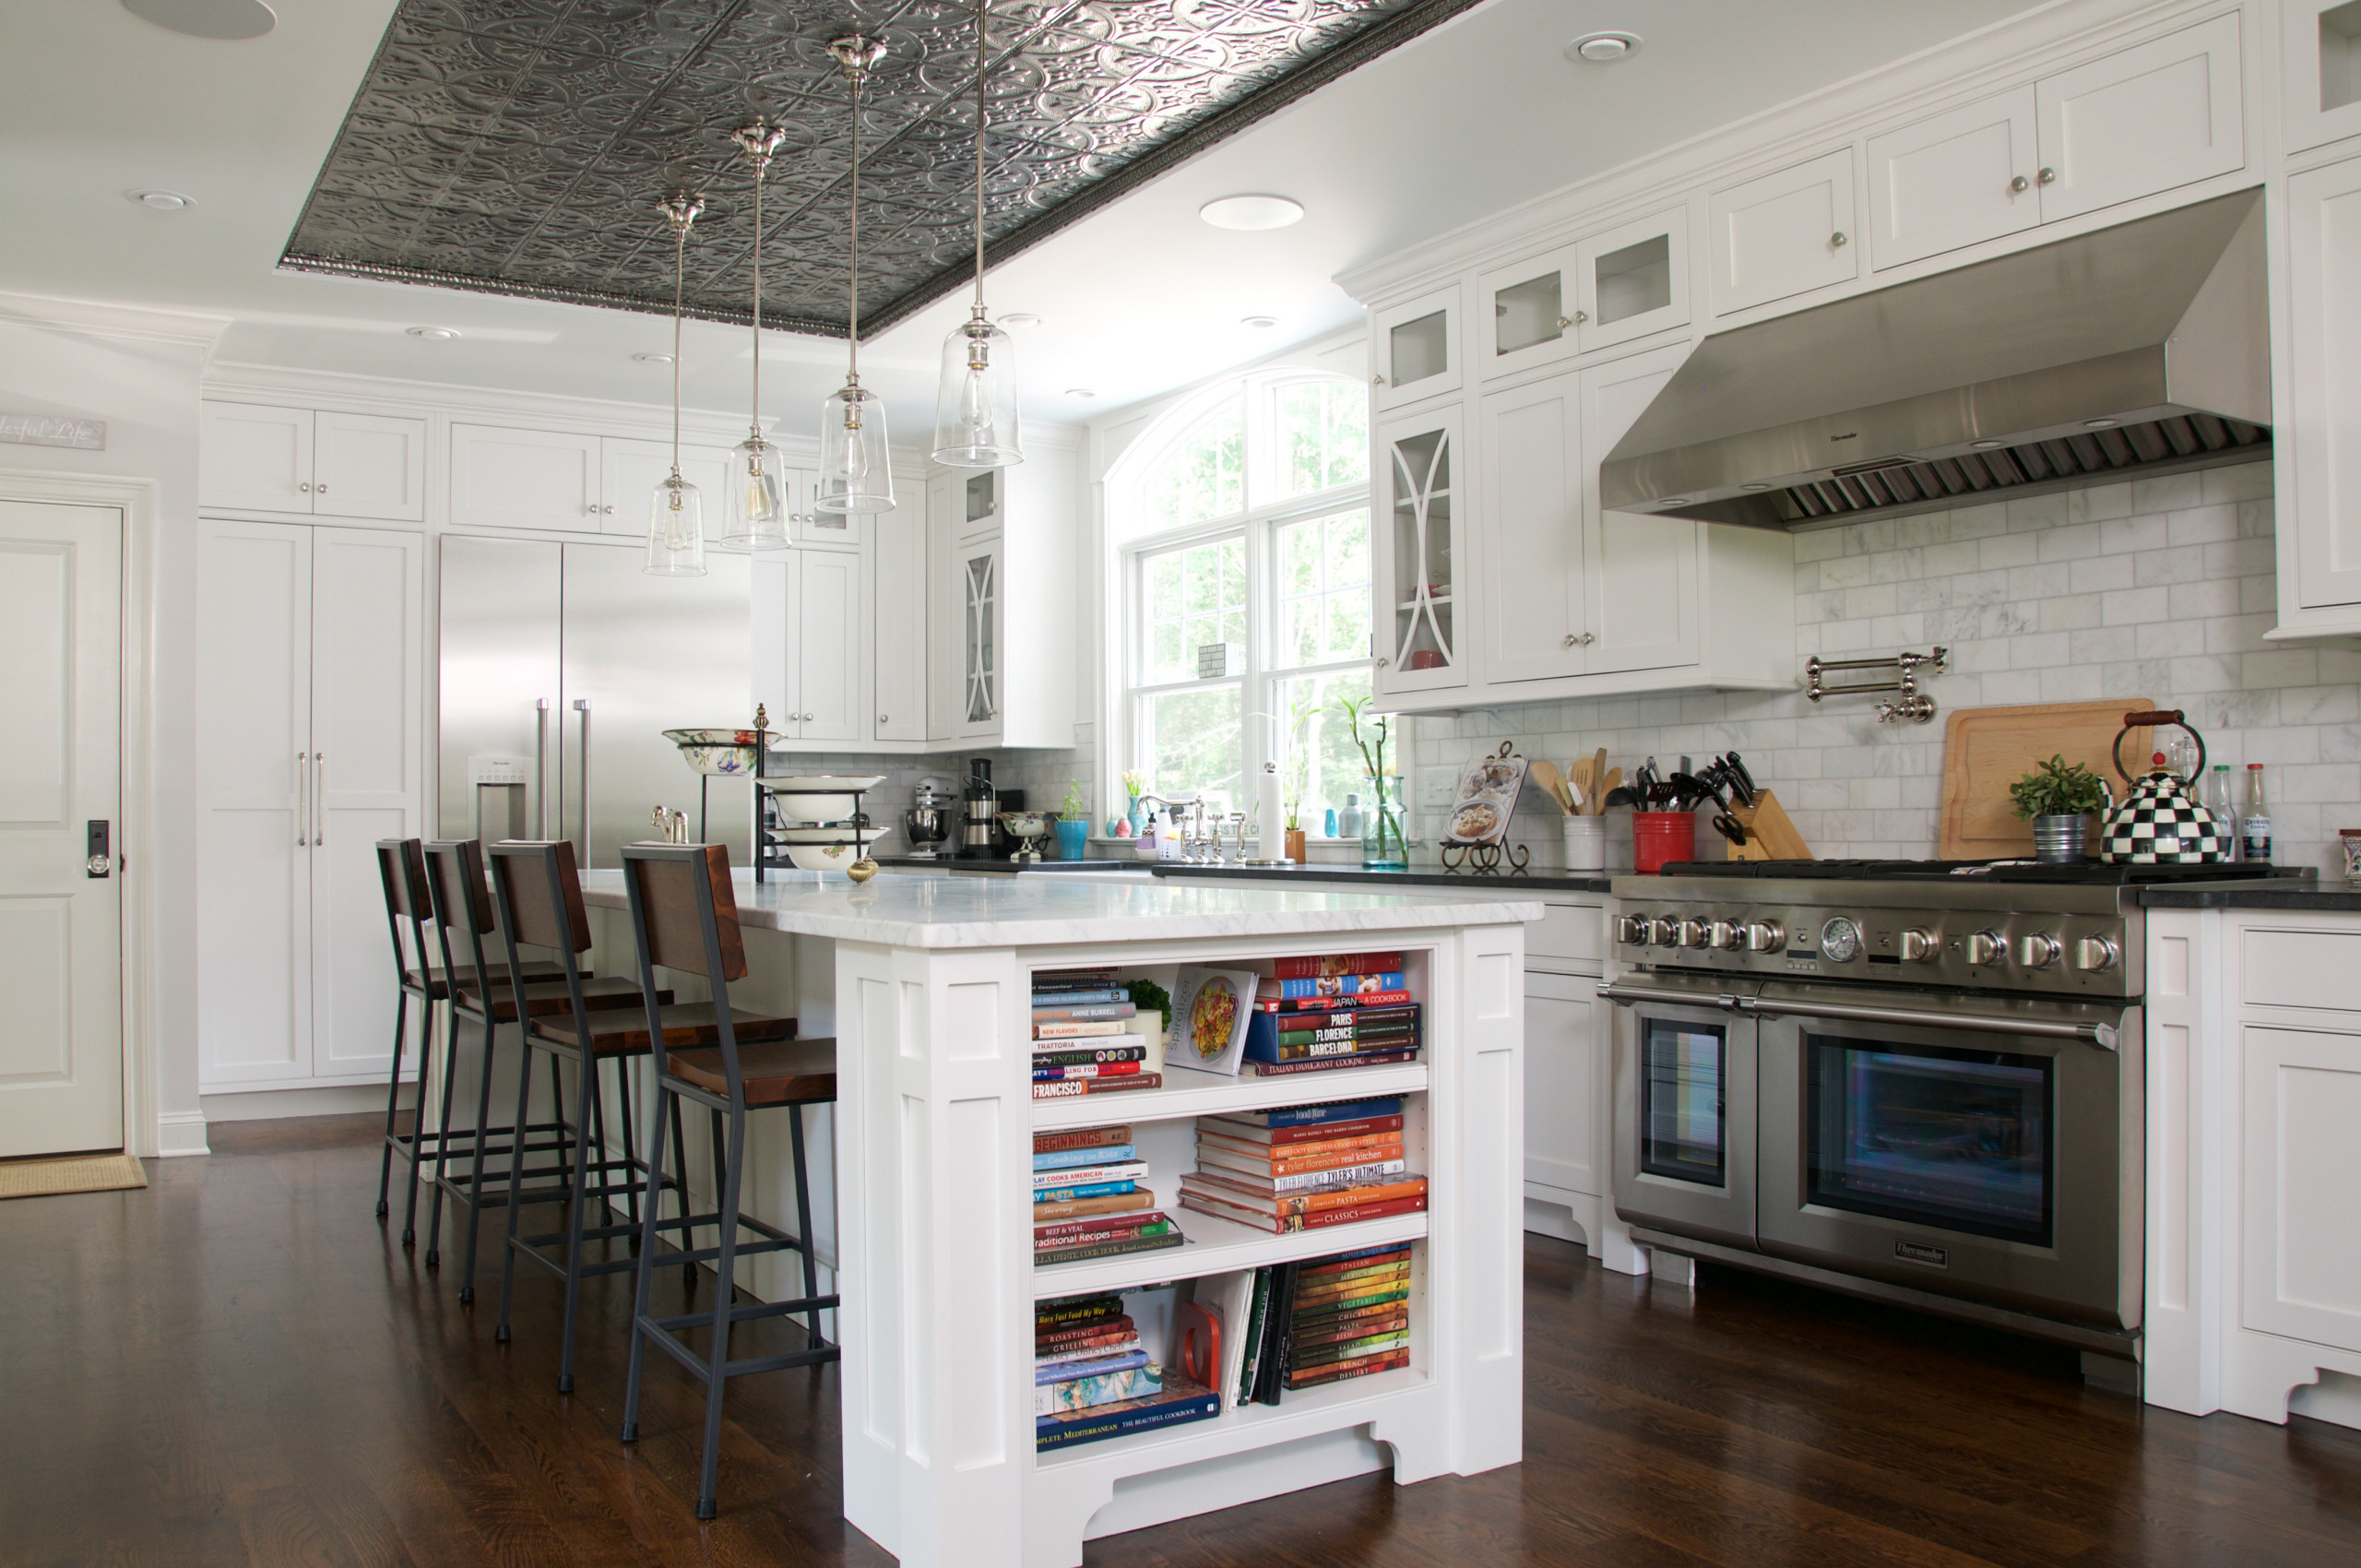 75 Best Kitchen Remodel Design Ideas Photos April 2021 Houzz